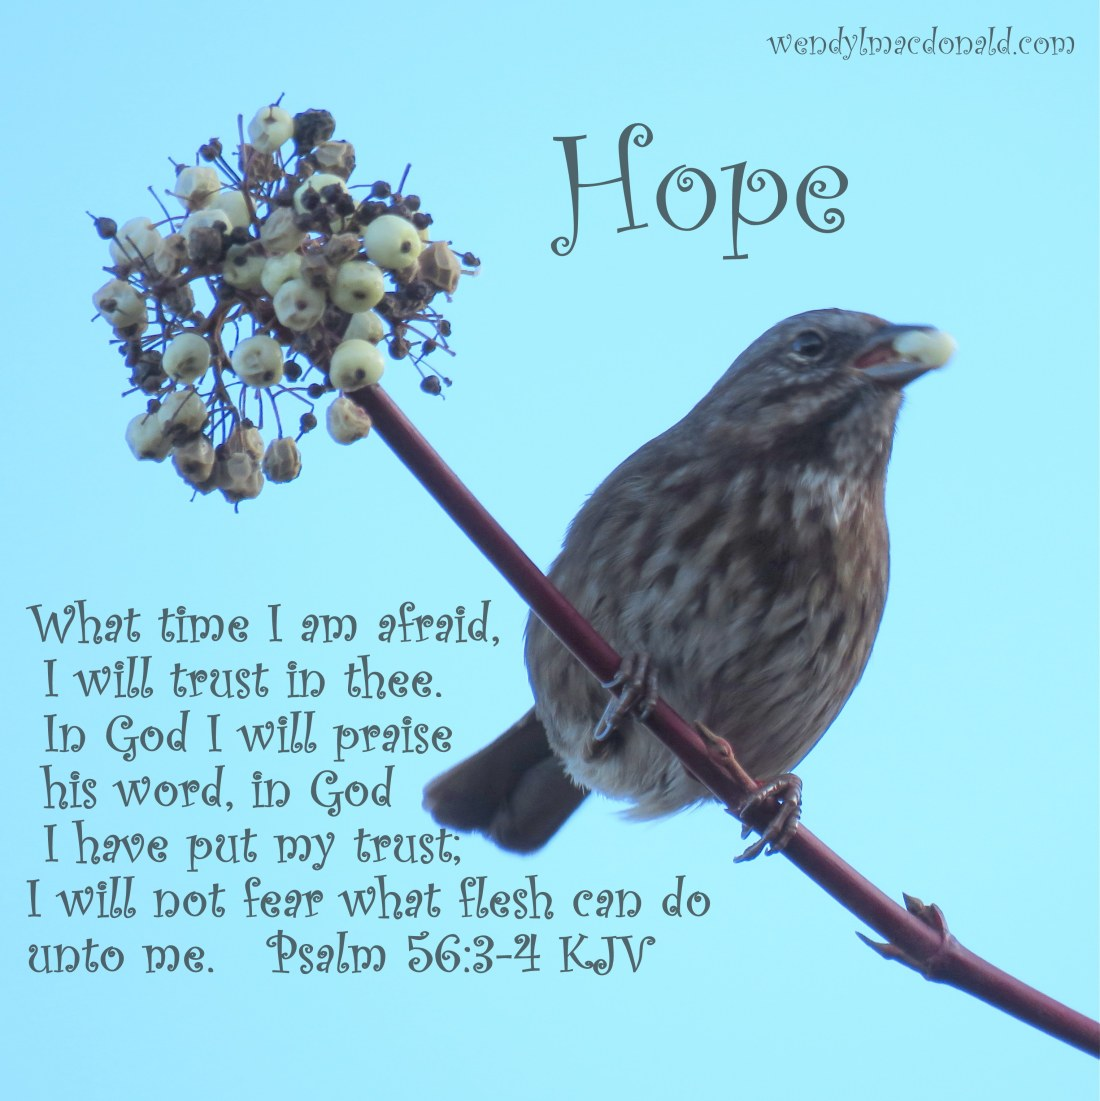 What time I am afraid, I will trust in thee. In God I will praise his word, in God I have put my trust; I will not fear what flesh can do unto me. Psalm 56:3-4 KJV